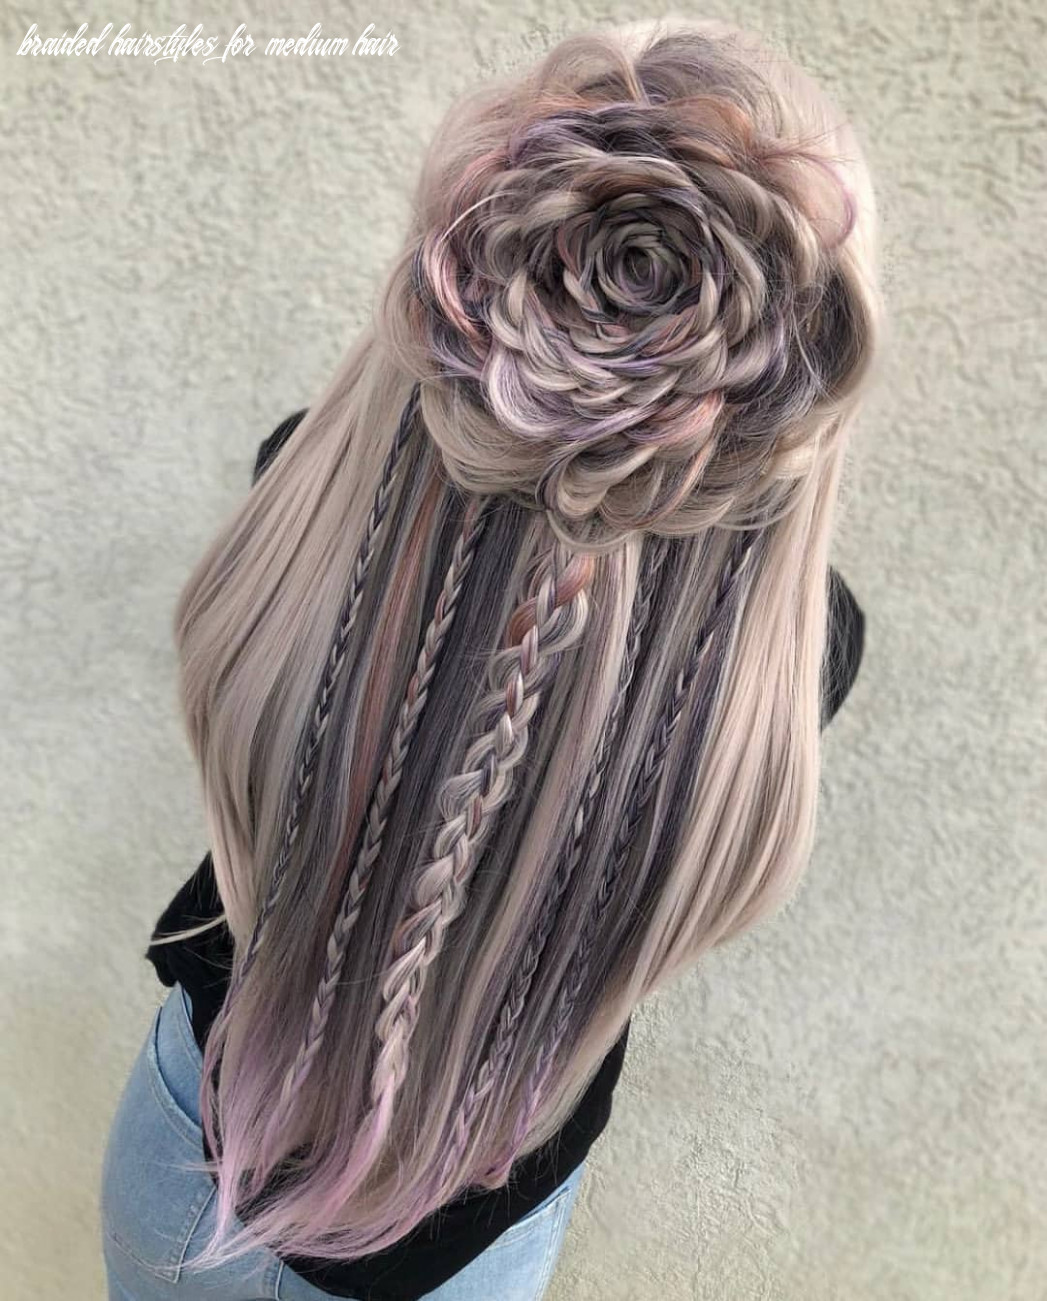 10 Amazing Braided Hairstyles for Long Hair - 10 Women Hair Styles